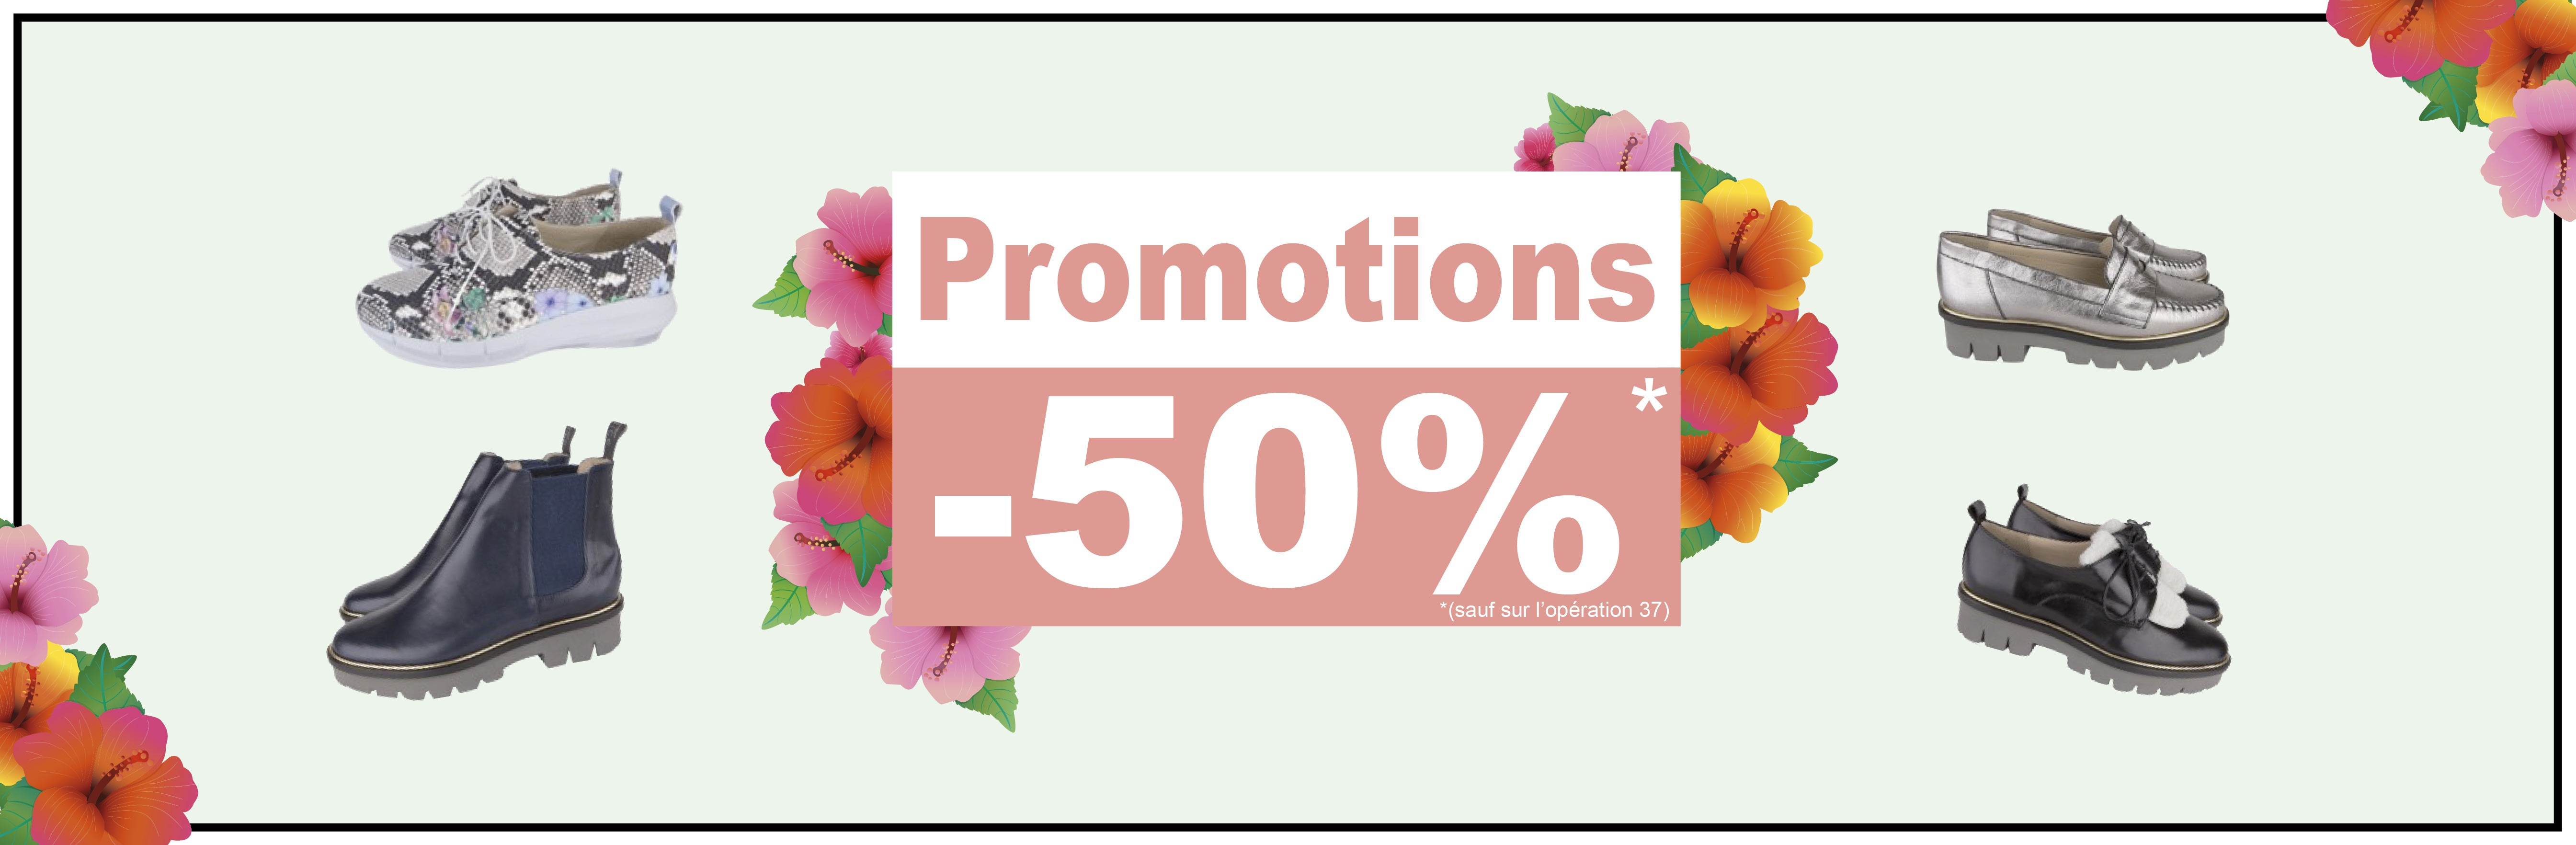 Promotions 50 %